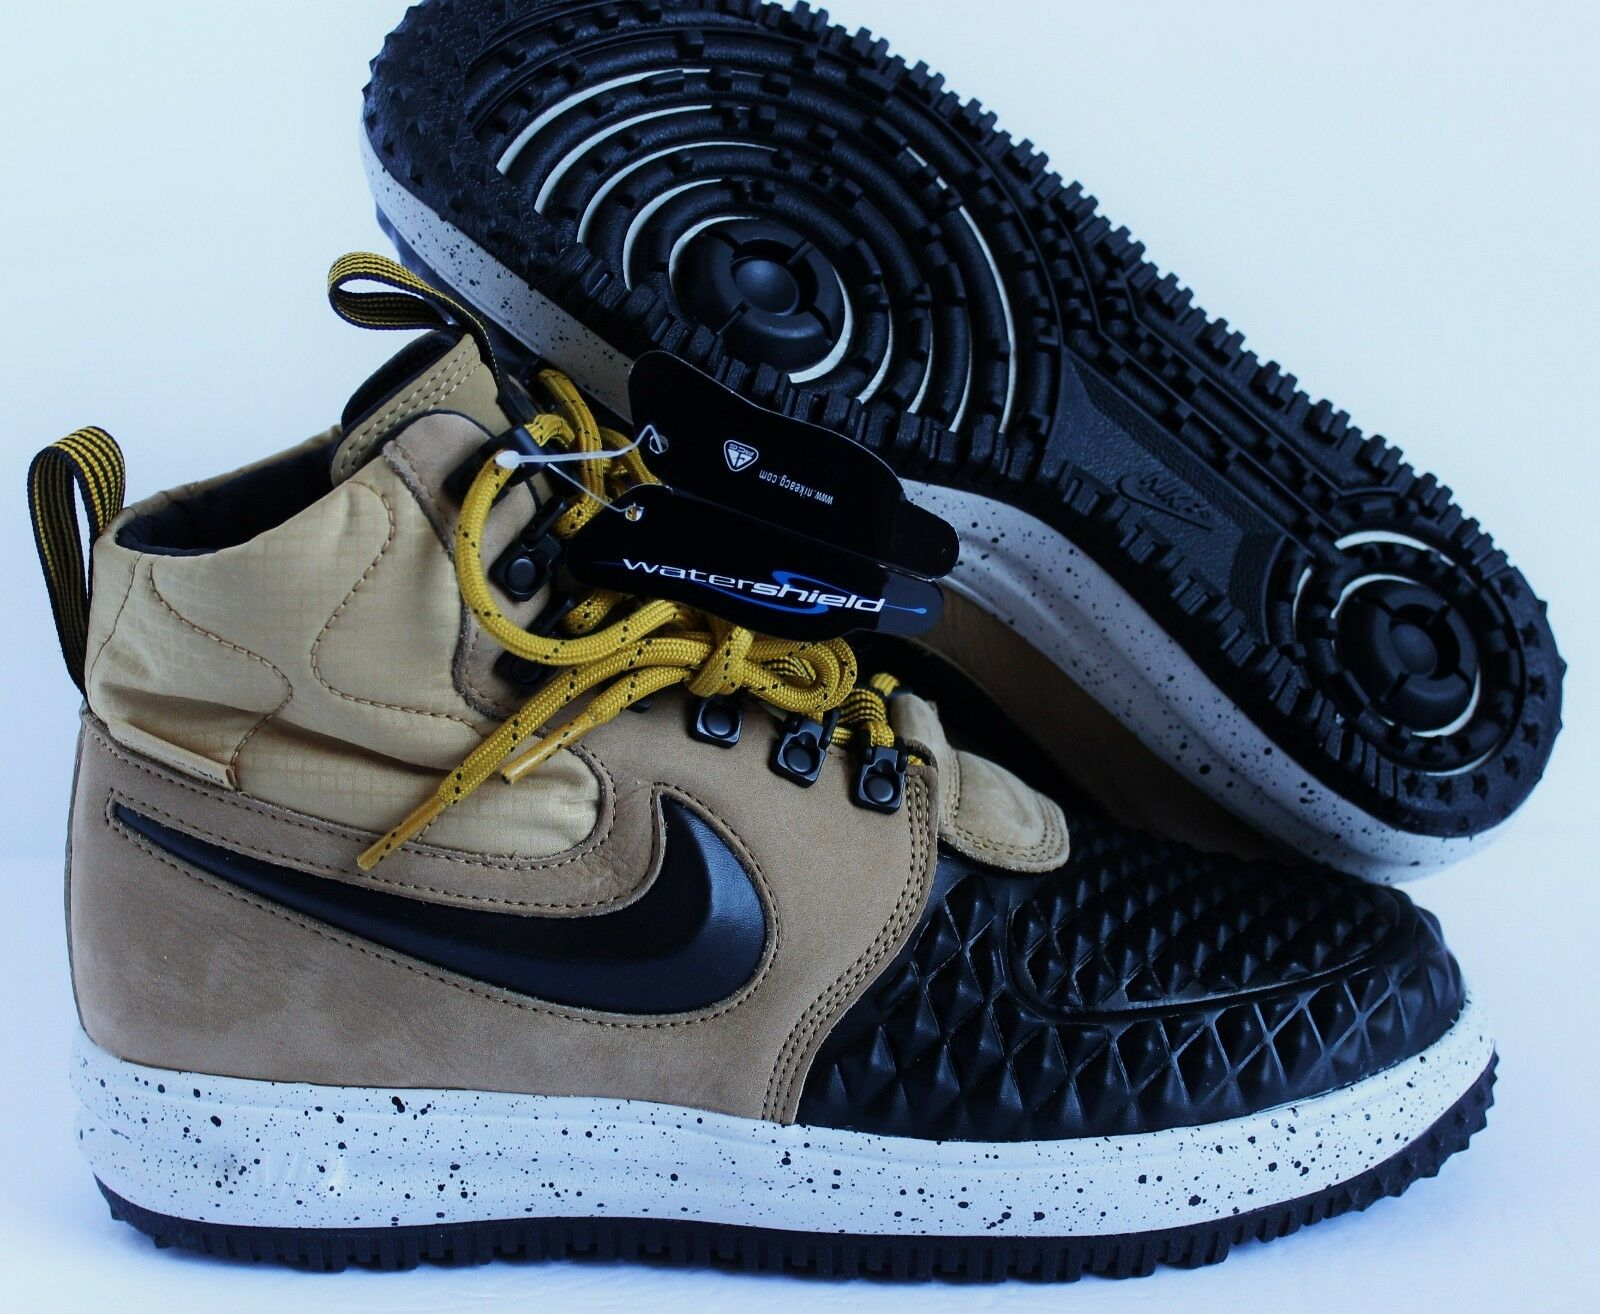 NIKE LUNAR FORCE 1 LF1 DUCKBOOT '17 WATERPROOF MET gold-BLACK SZ 9 [916682-701]